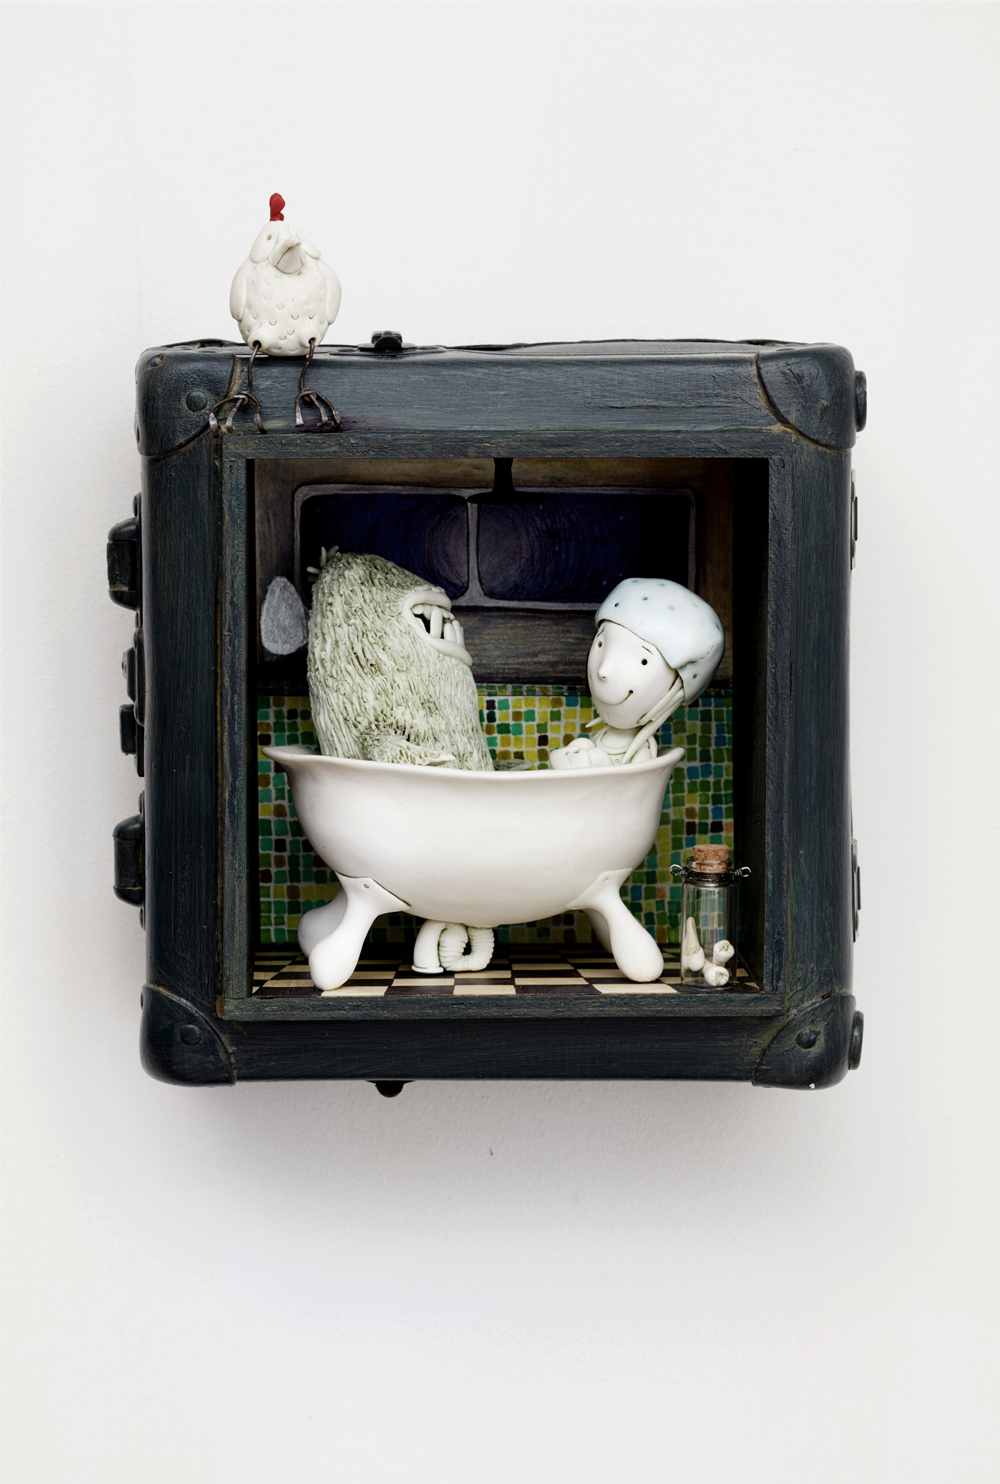 'Negotiating with the Tooth Fairy'W30cm x H35cm x D15cm Porcelain, found object and illustration wall mounted tableau